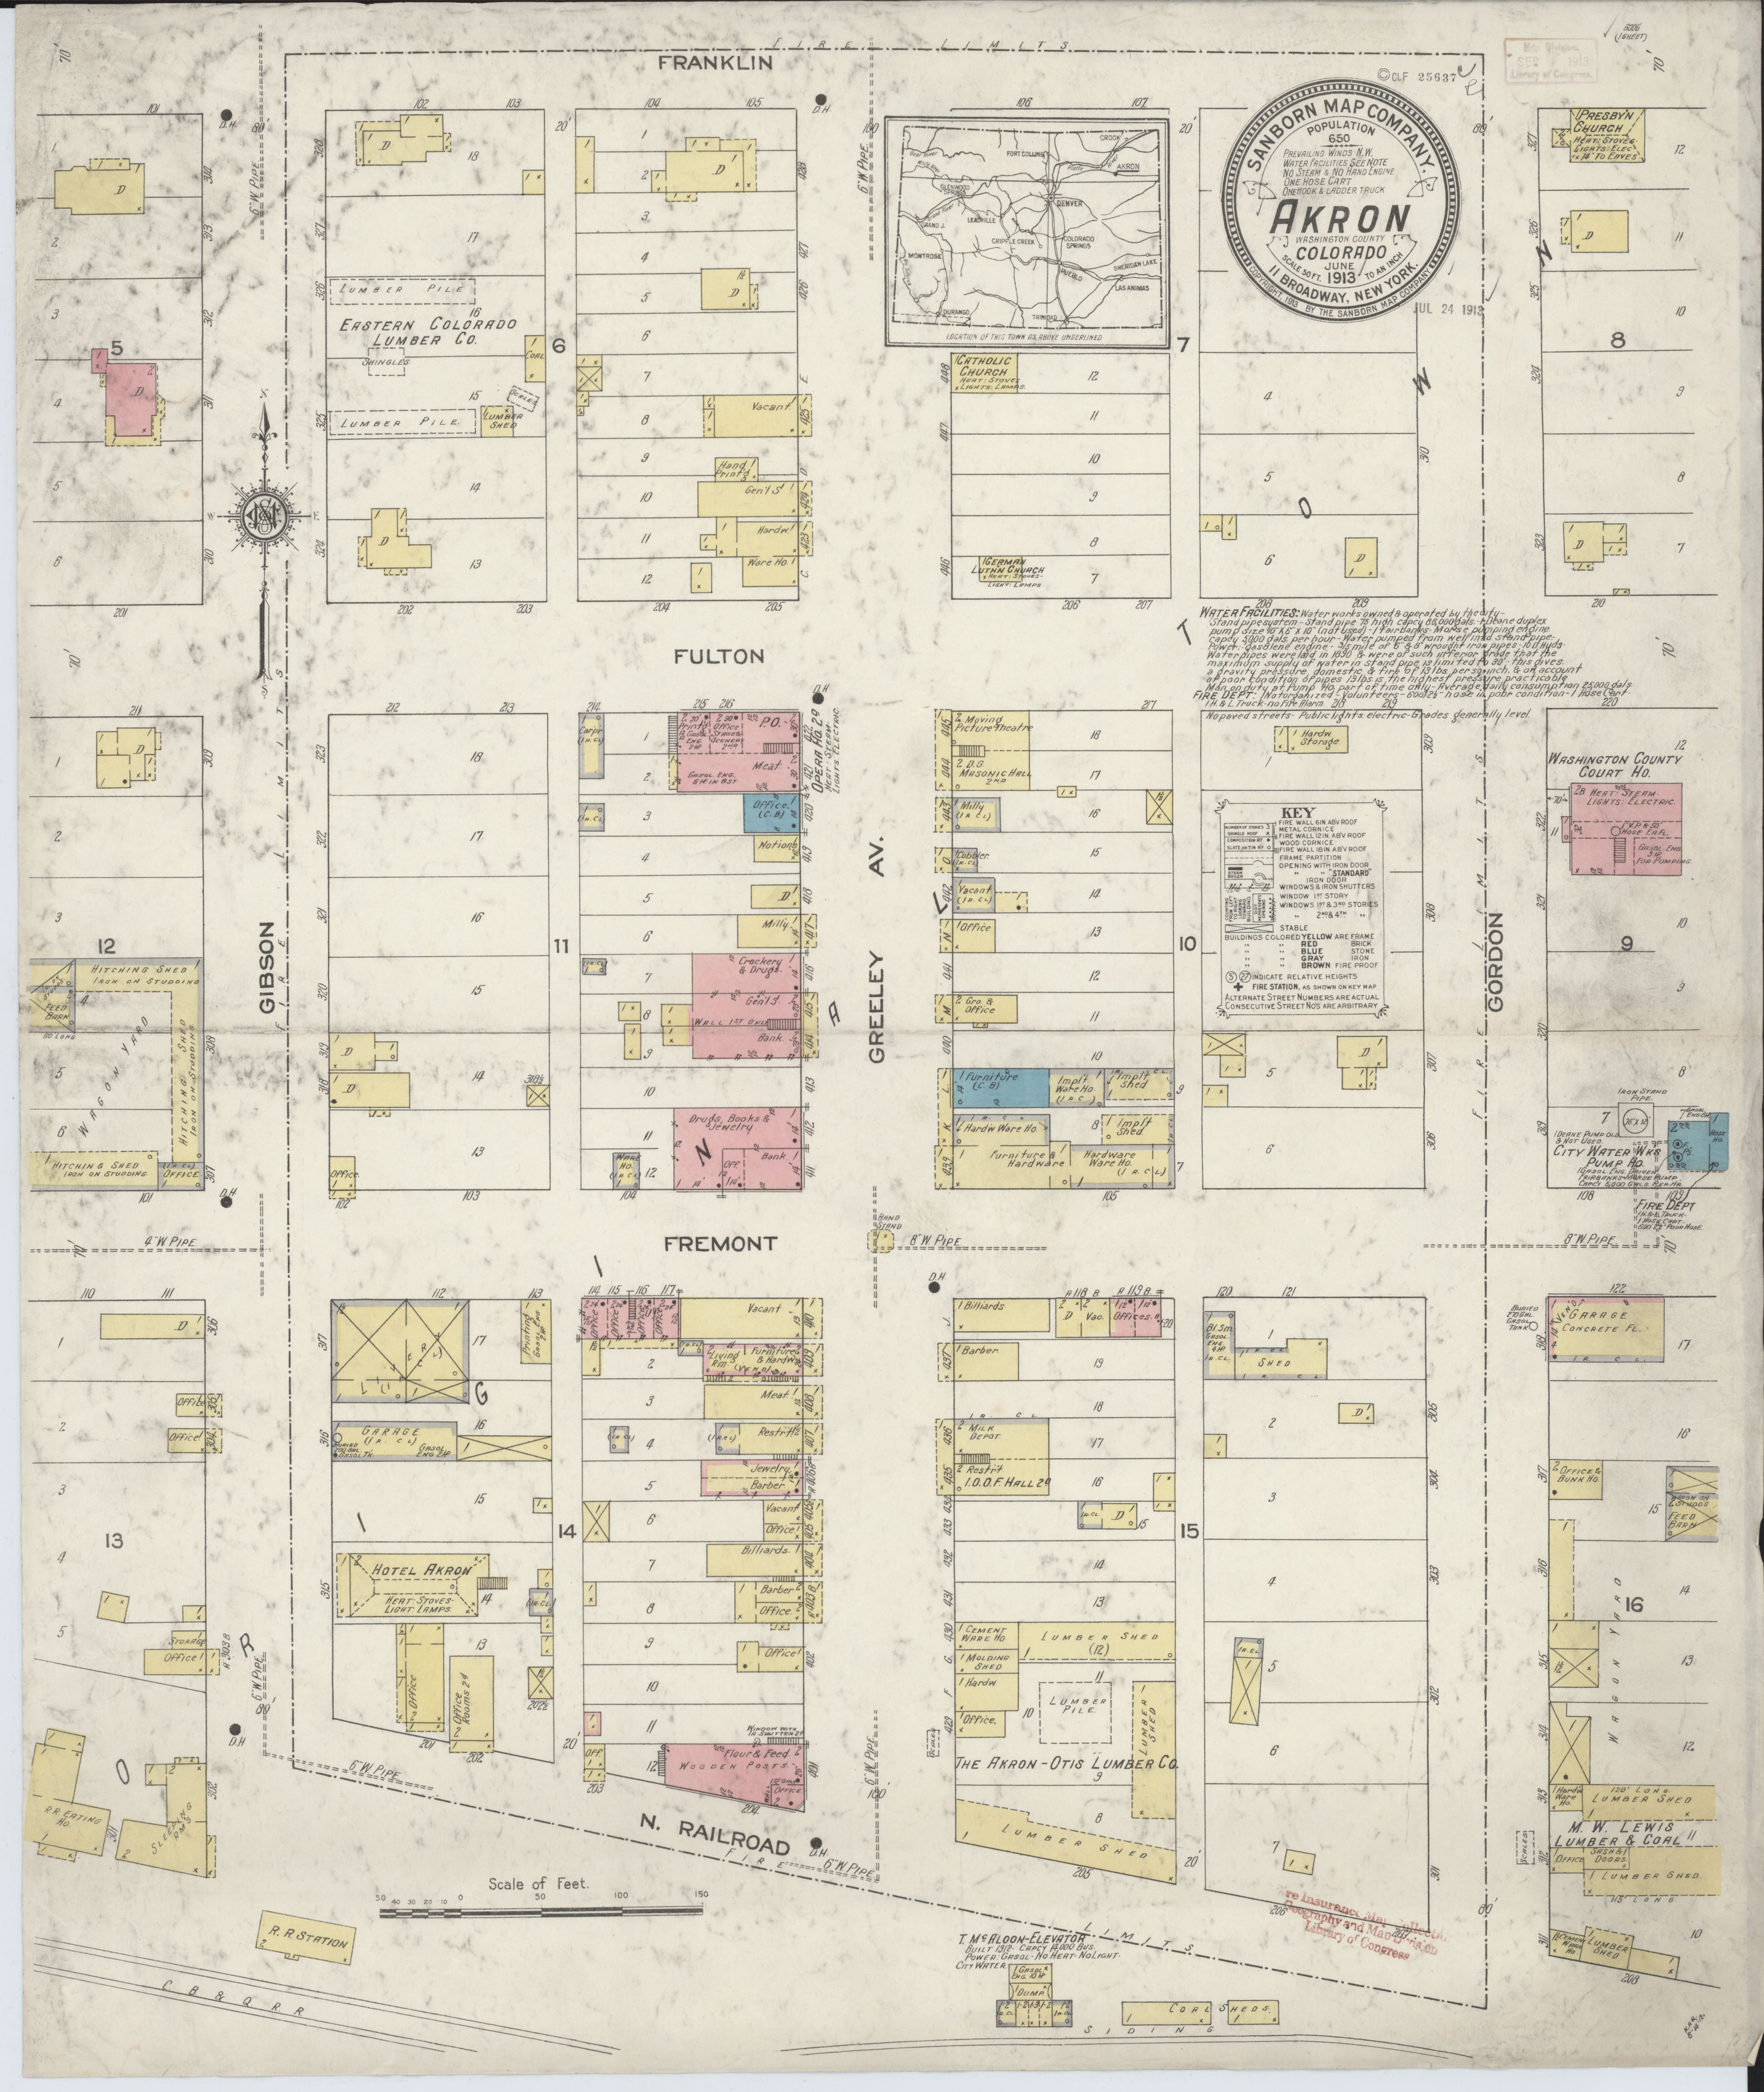 Akron Colorado Map.File Sanborn Fire Insurance Map From Akron Washington County